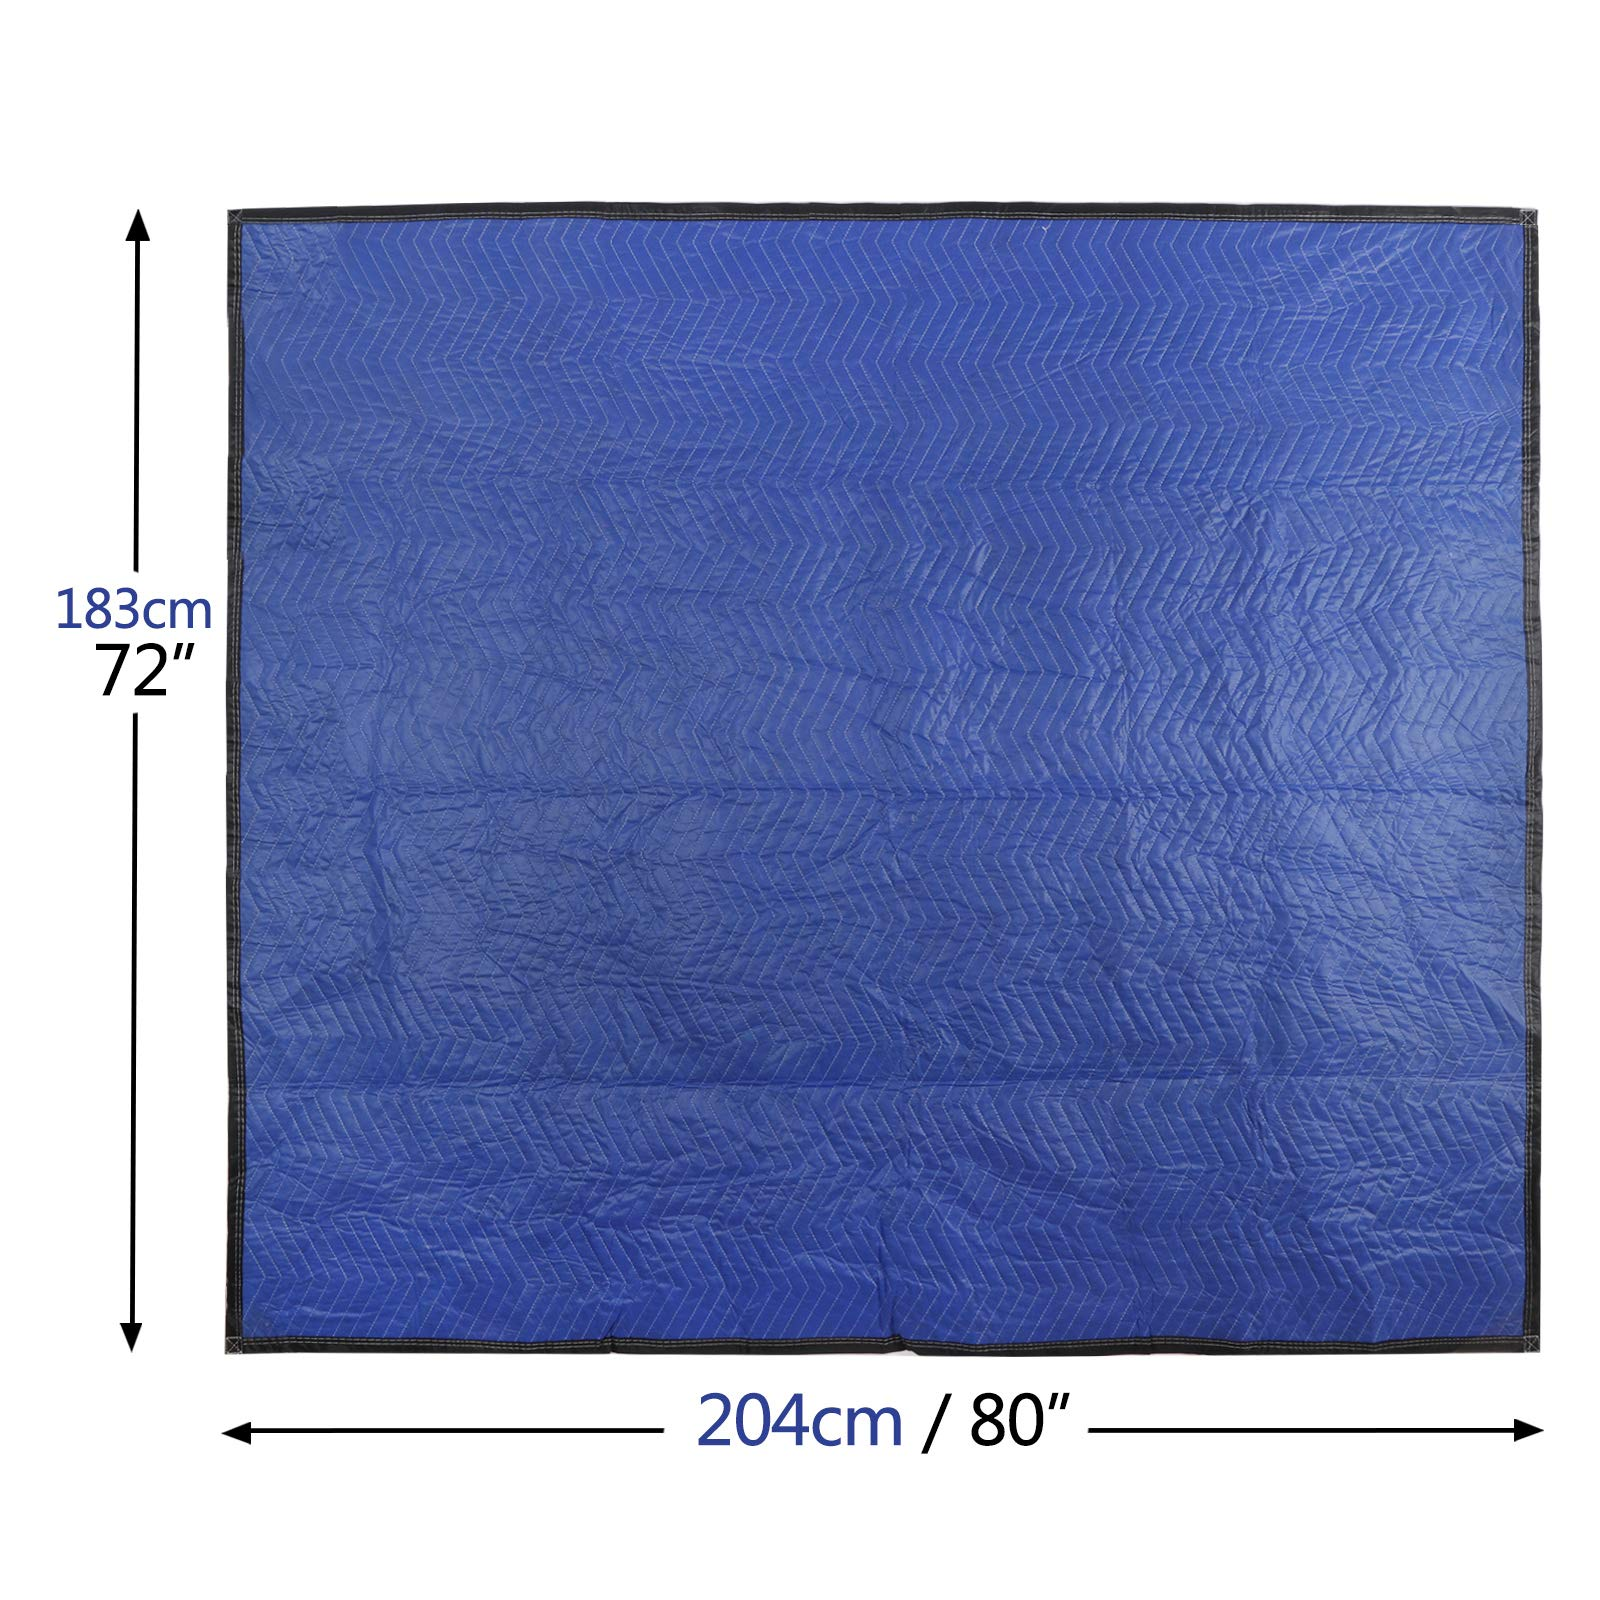 """F2C Mover Moving Blankets Pro Economy Thick 80""""x 72"""" Moving Packing Blankets Skins Pack of 12 Total 35Lbs/ Doz, Blue by F2C (Image #7)"""